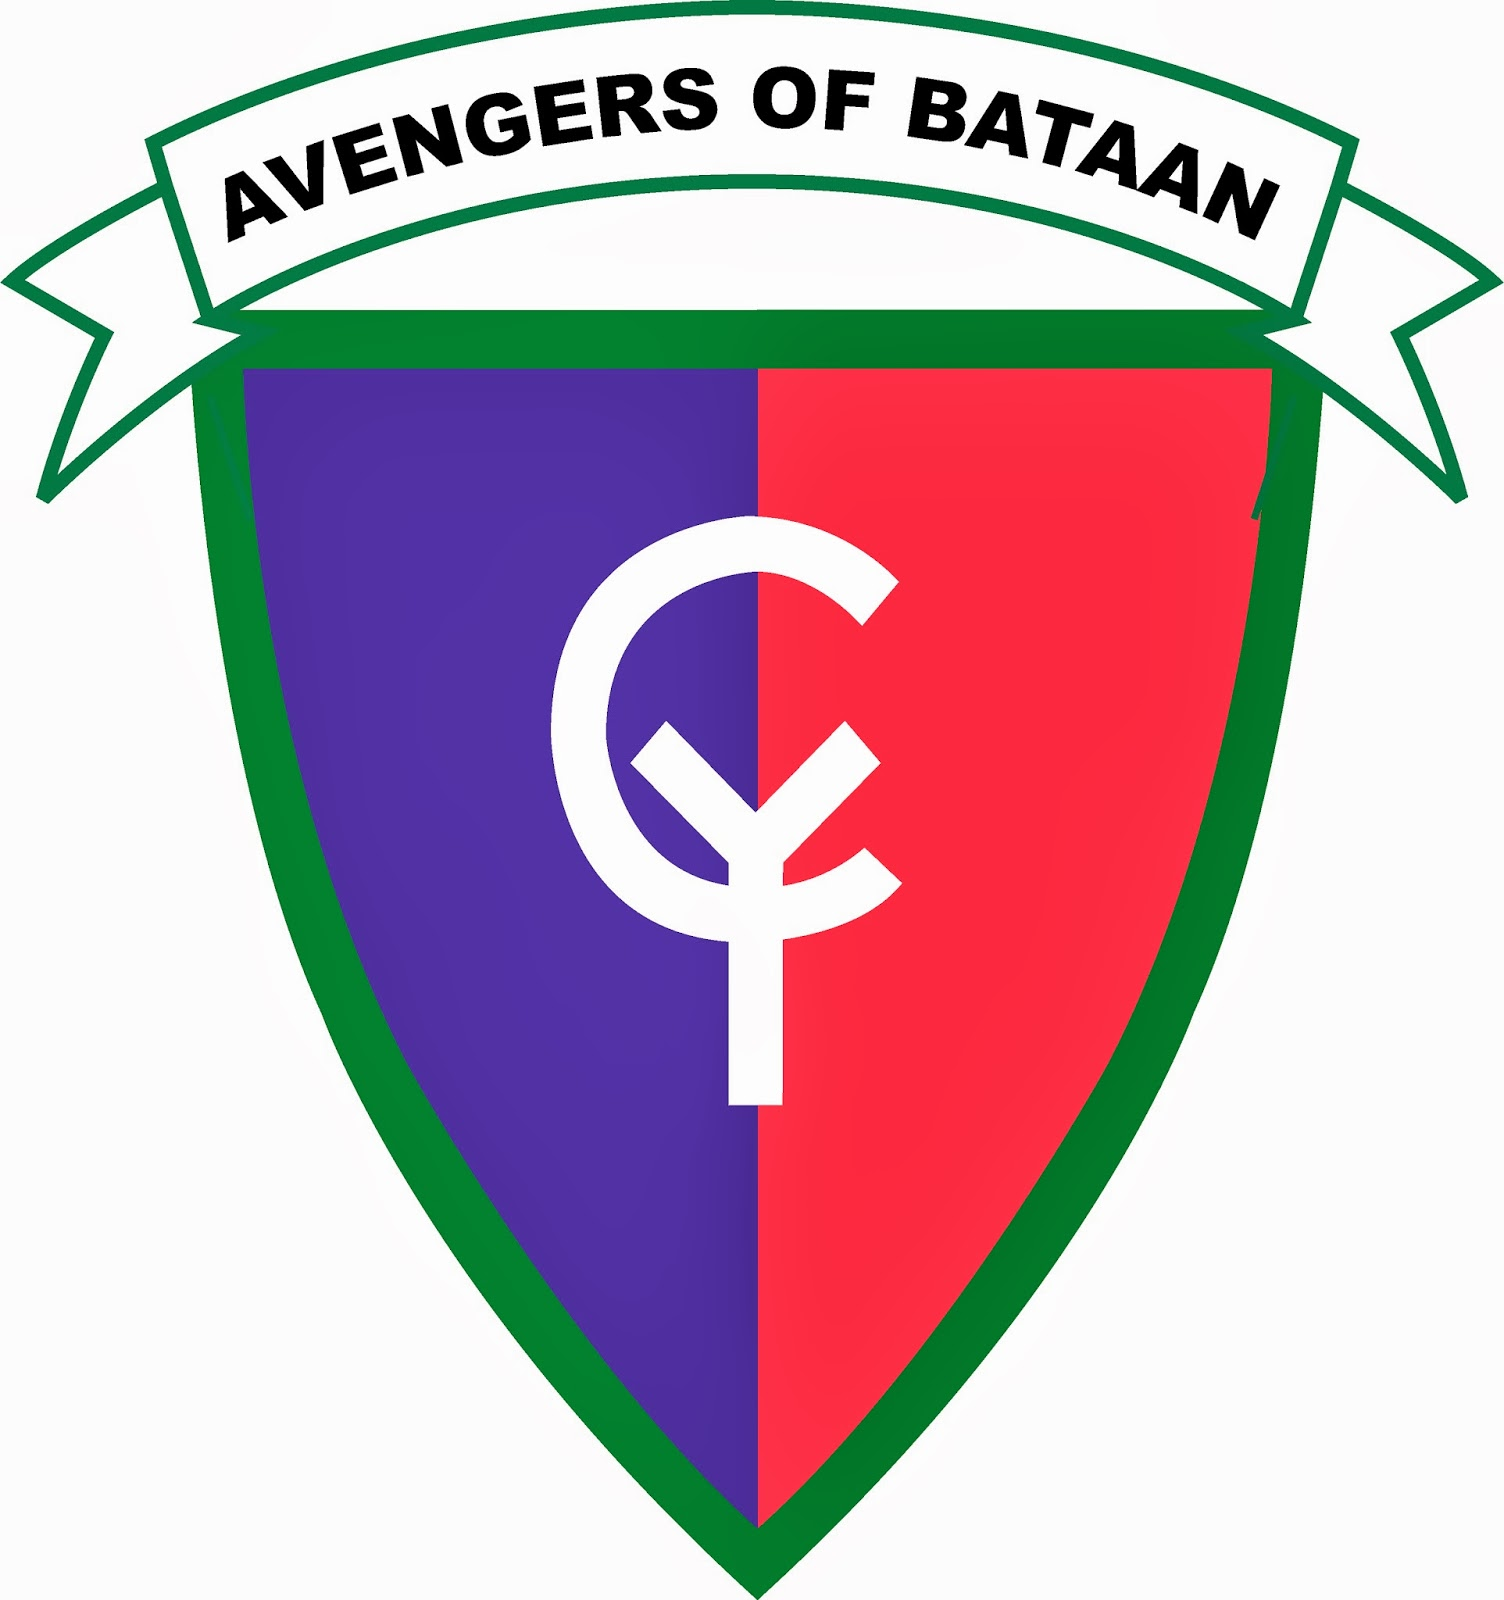 38th Infantry Division- Avengers of Bataan, image bought from Veteran Graphic